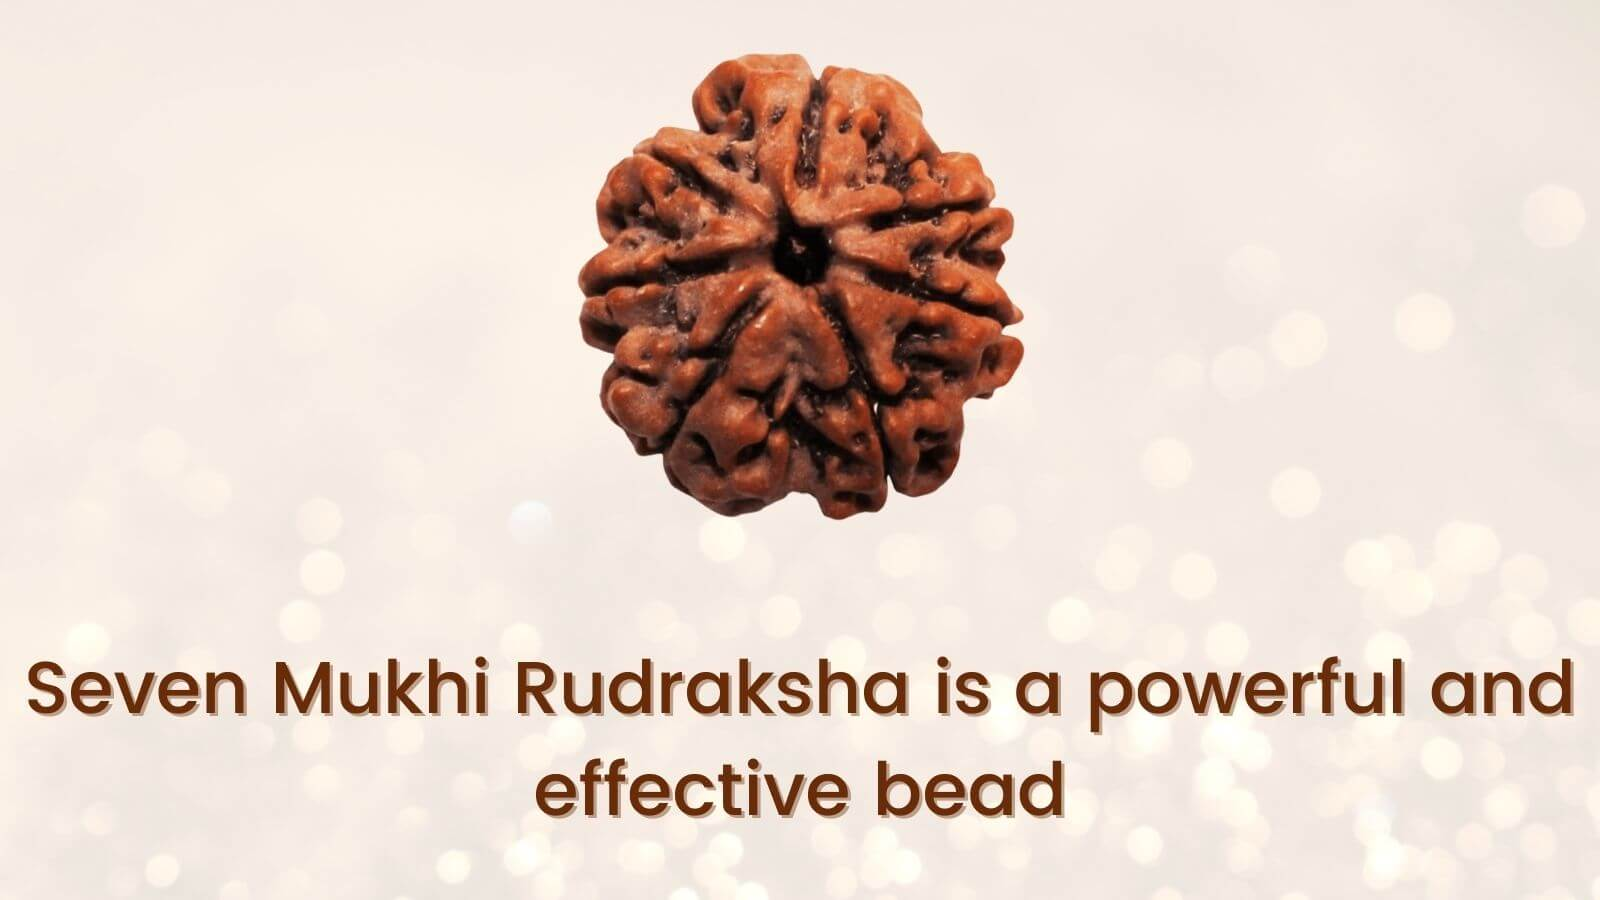 <strong>Most powerful and effective bead: Seven Mukhi Rudraksha</strong>